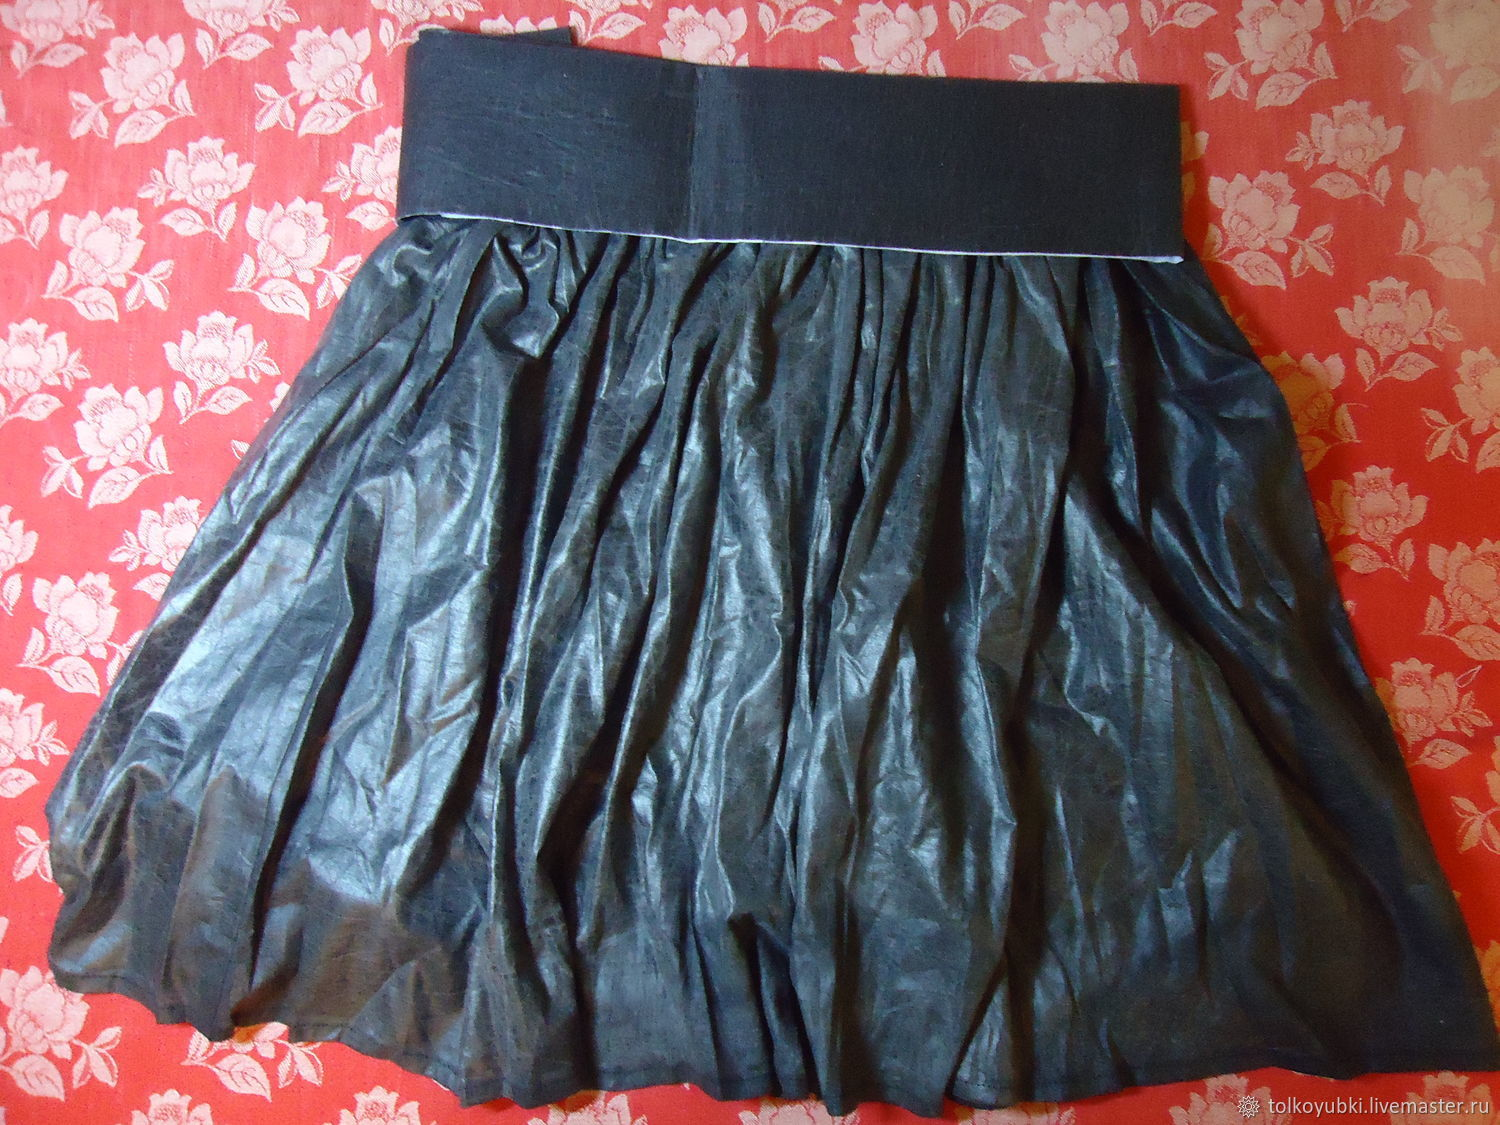 Designer cotton carbon Copy skirt, Skirts, Novosibirsk,  Фото №1